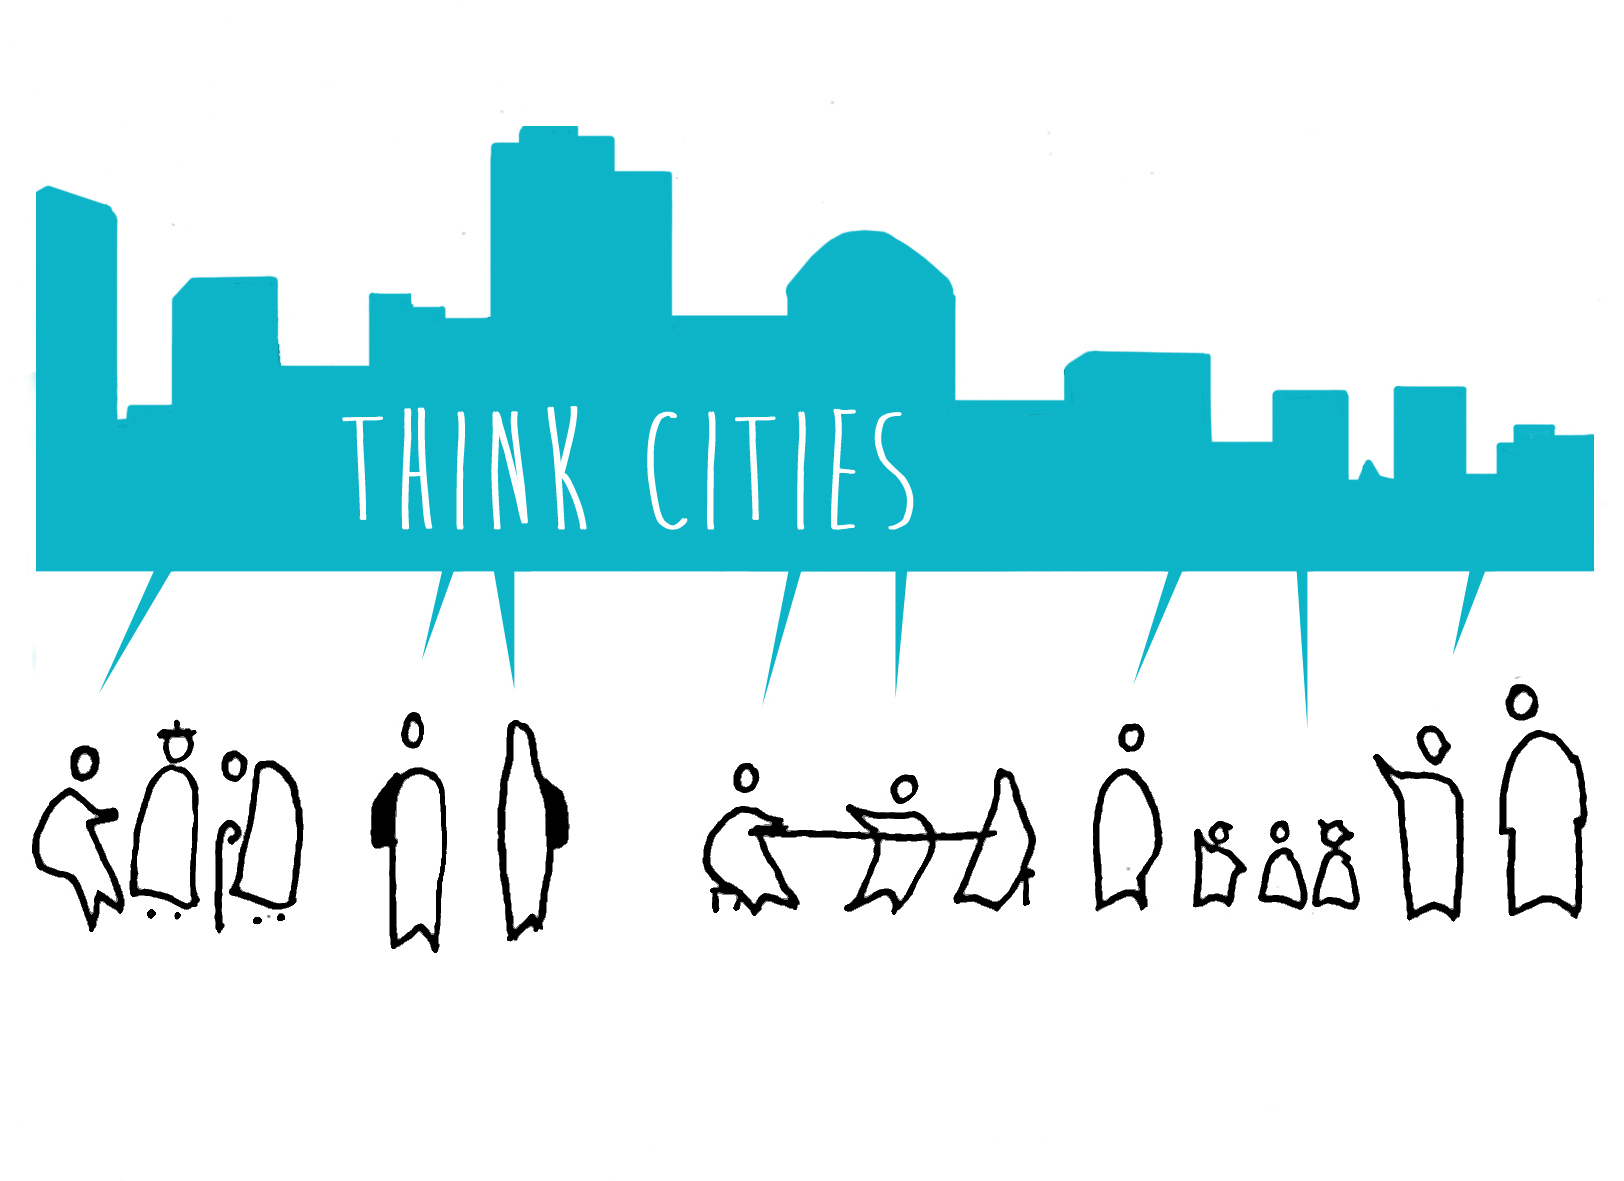 Think cities.jpg - 348.35 KB